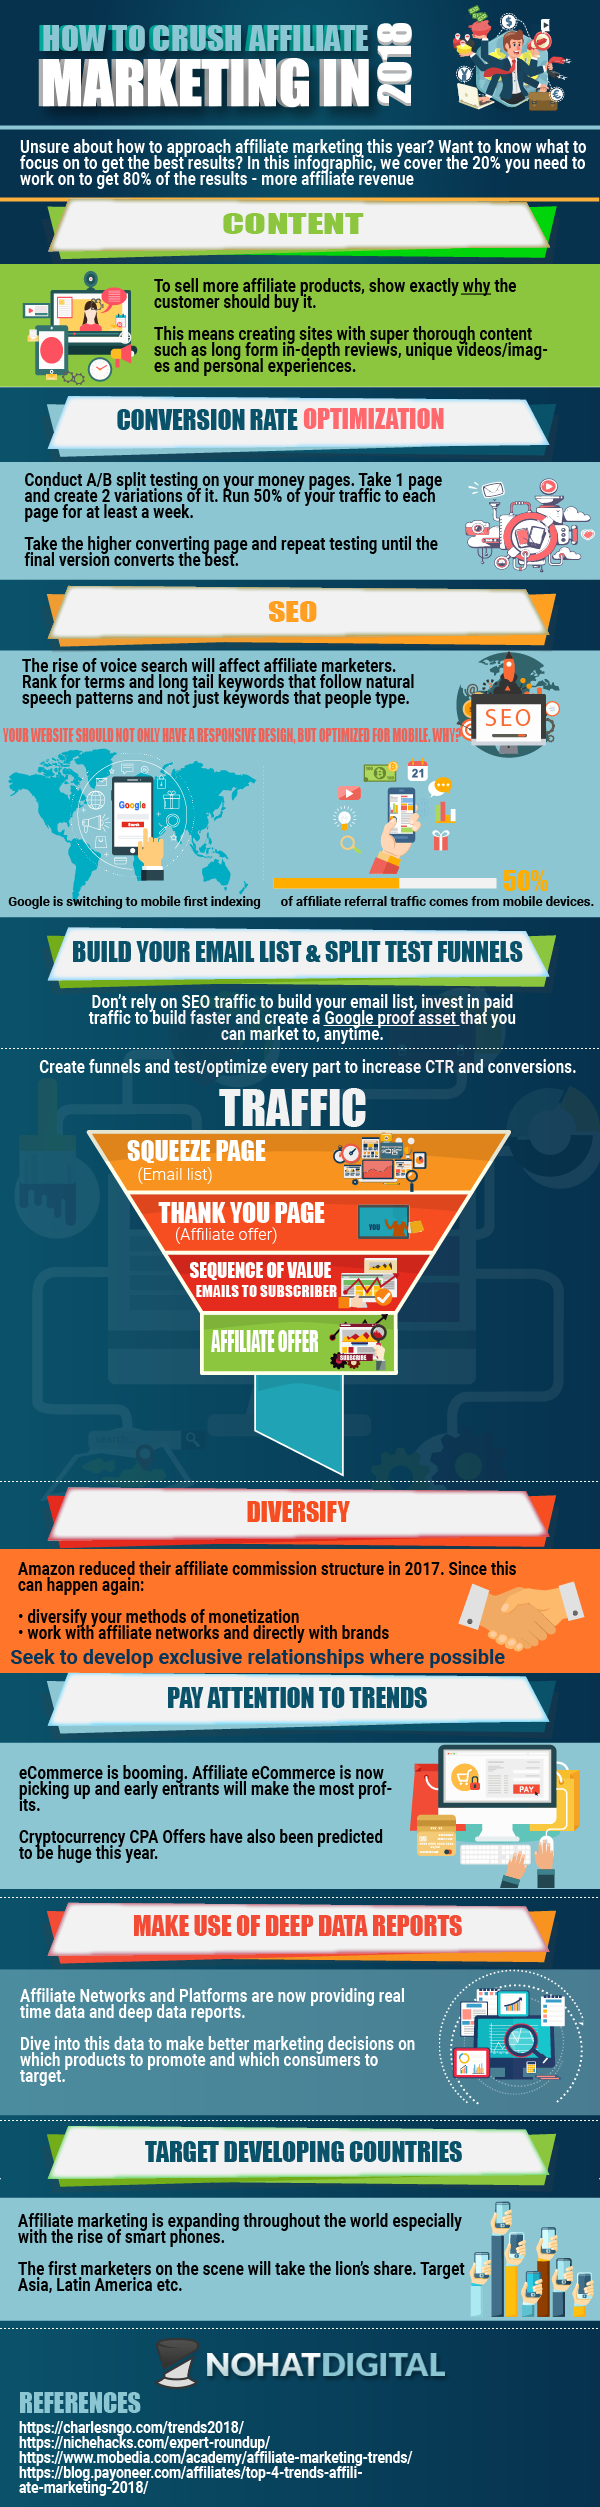 crush-affiliate-marketing-2018-infographic-plaza